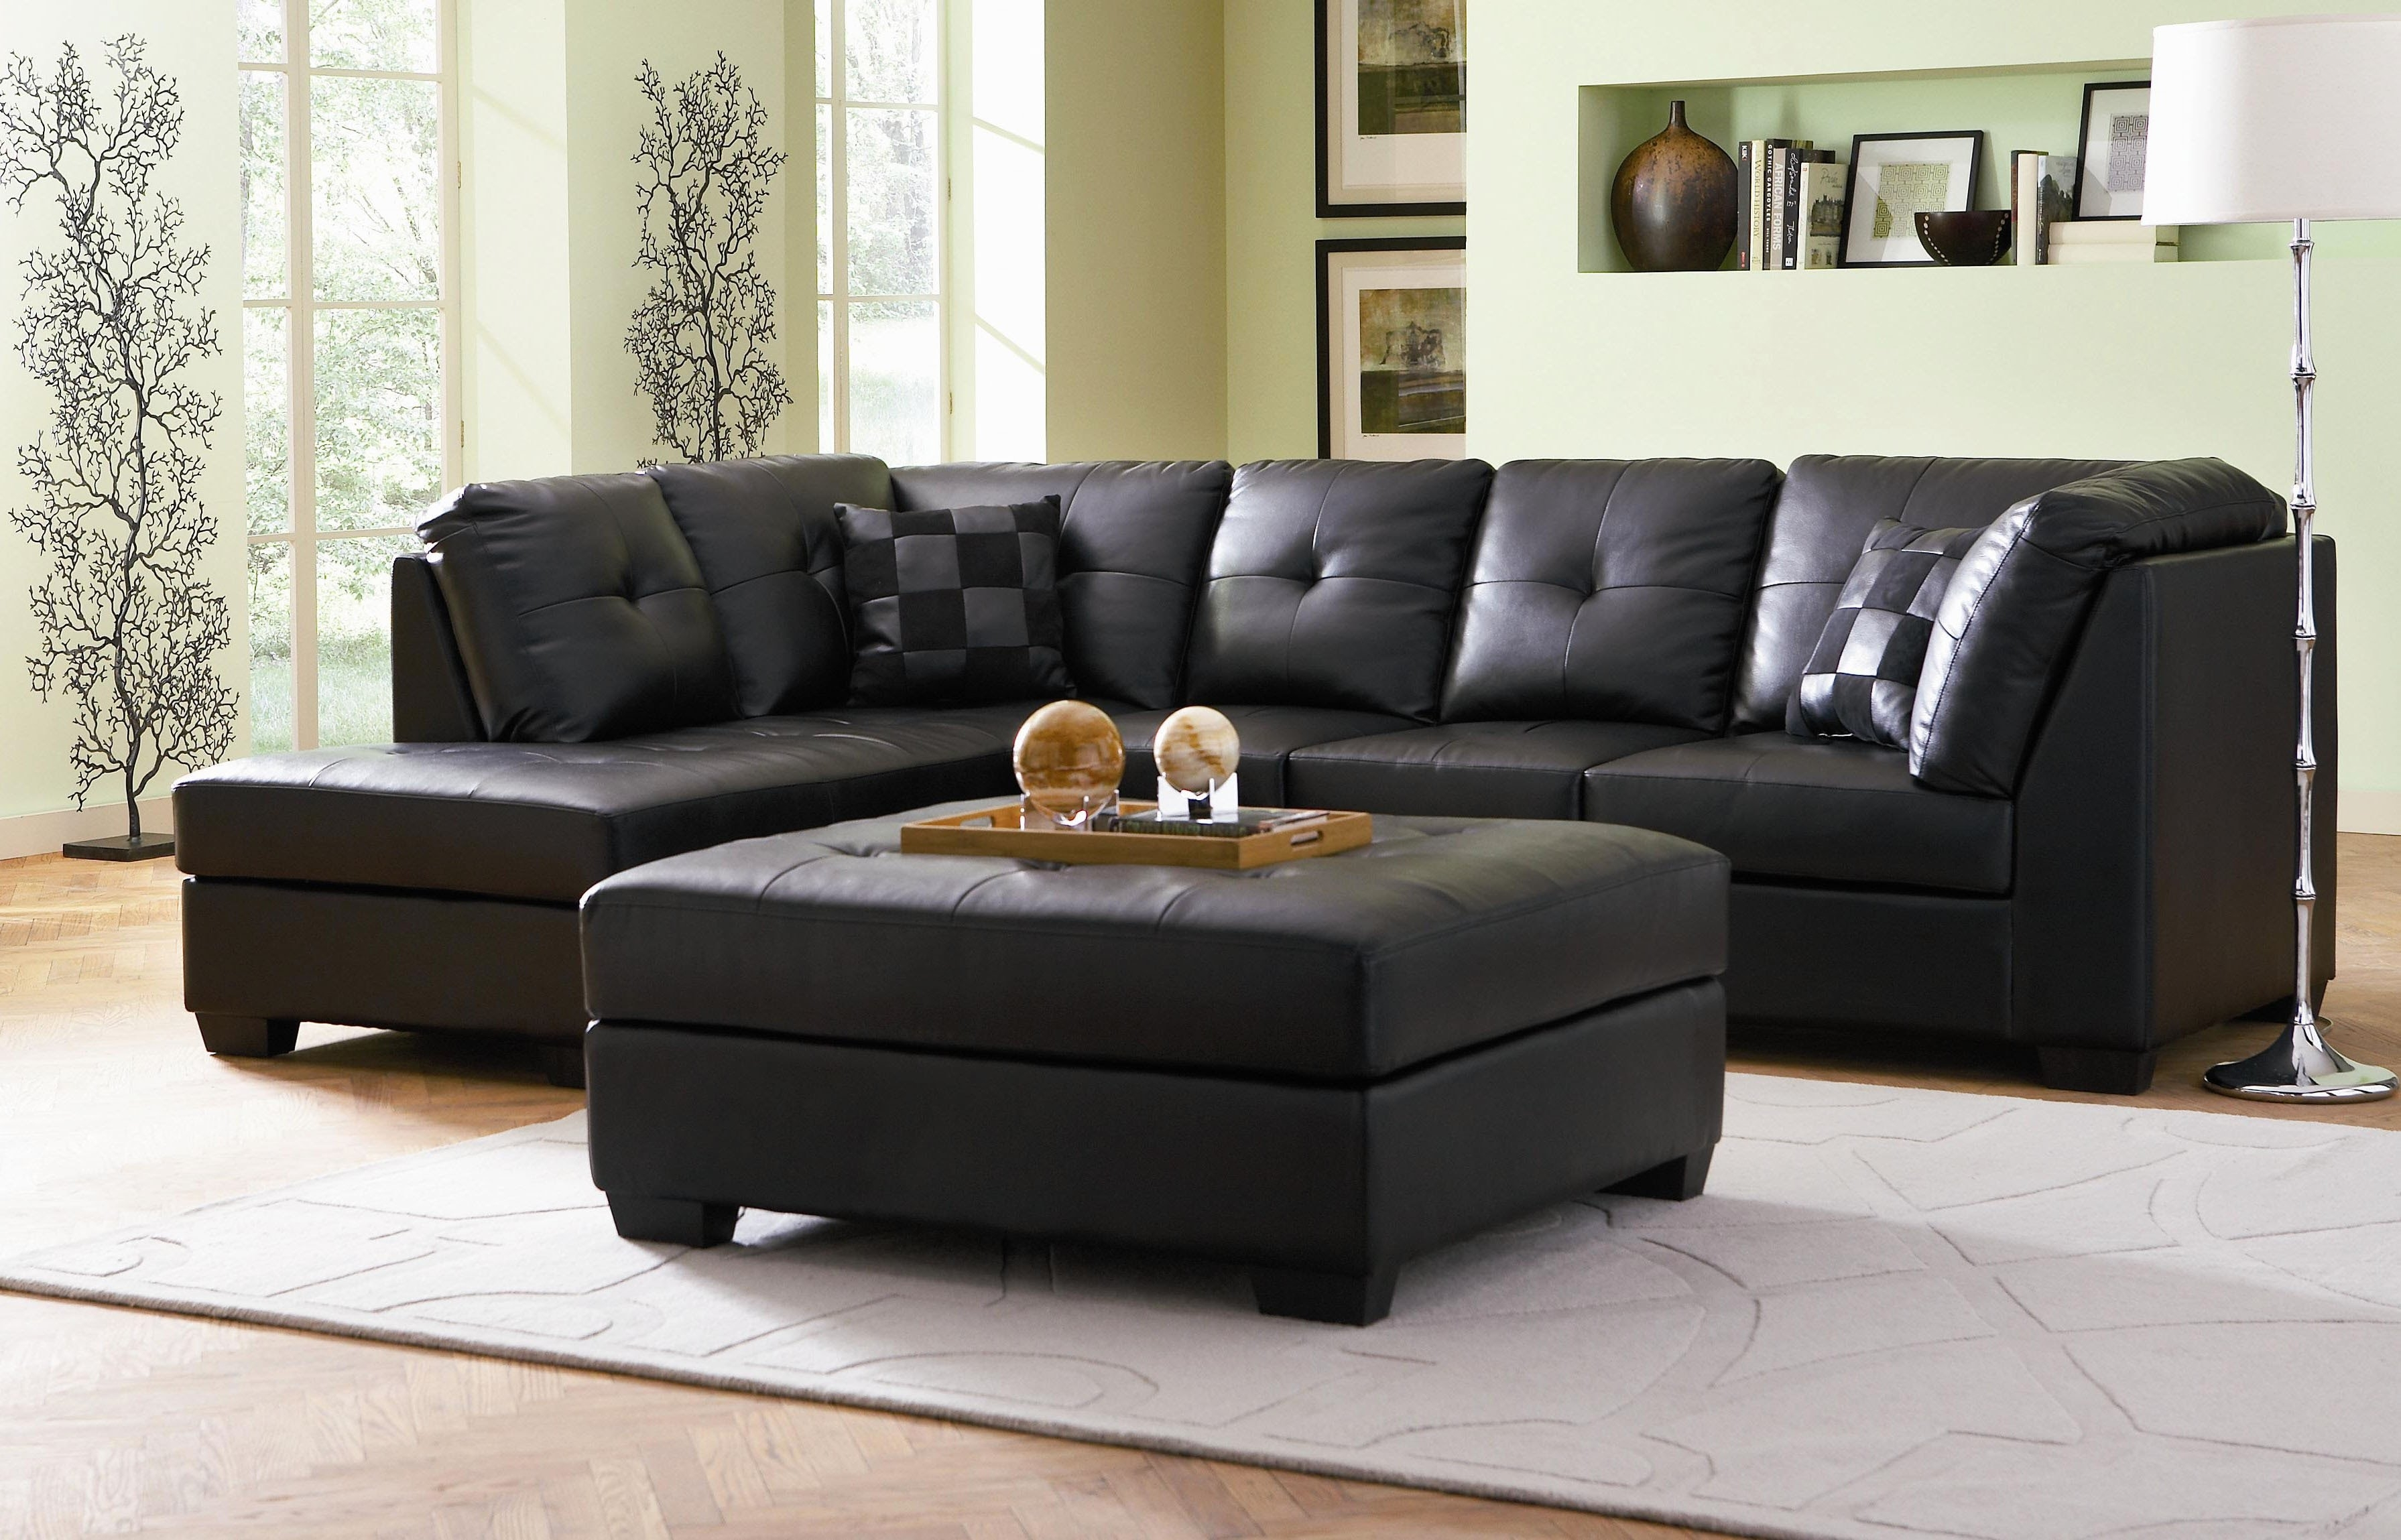 Cheap Sofas In San Antonio – Fjellkjeden Intended For Sectional Sofas In San Antonio (View 3 of 10)